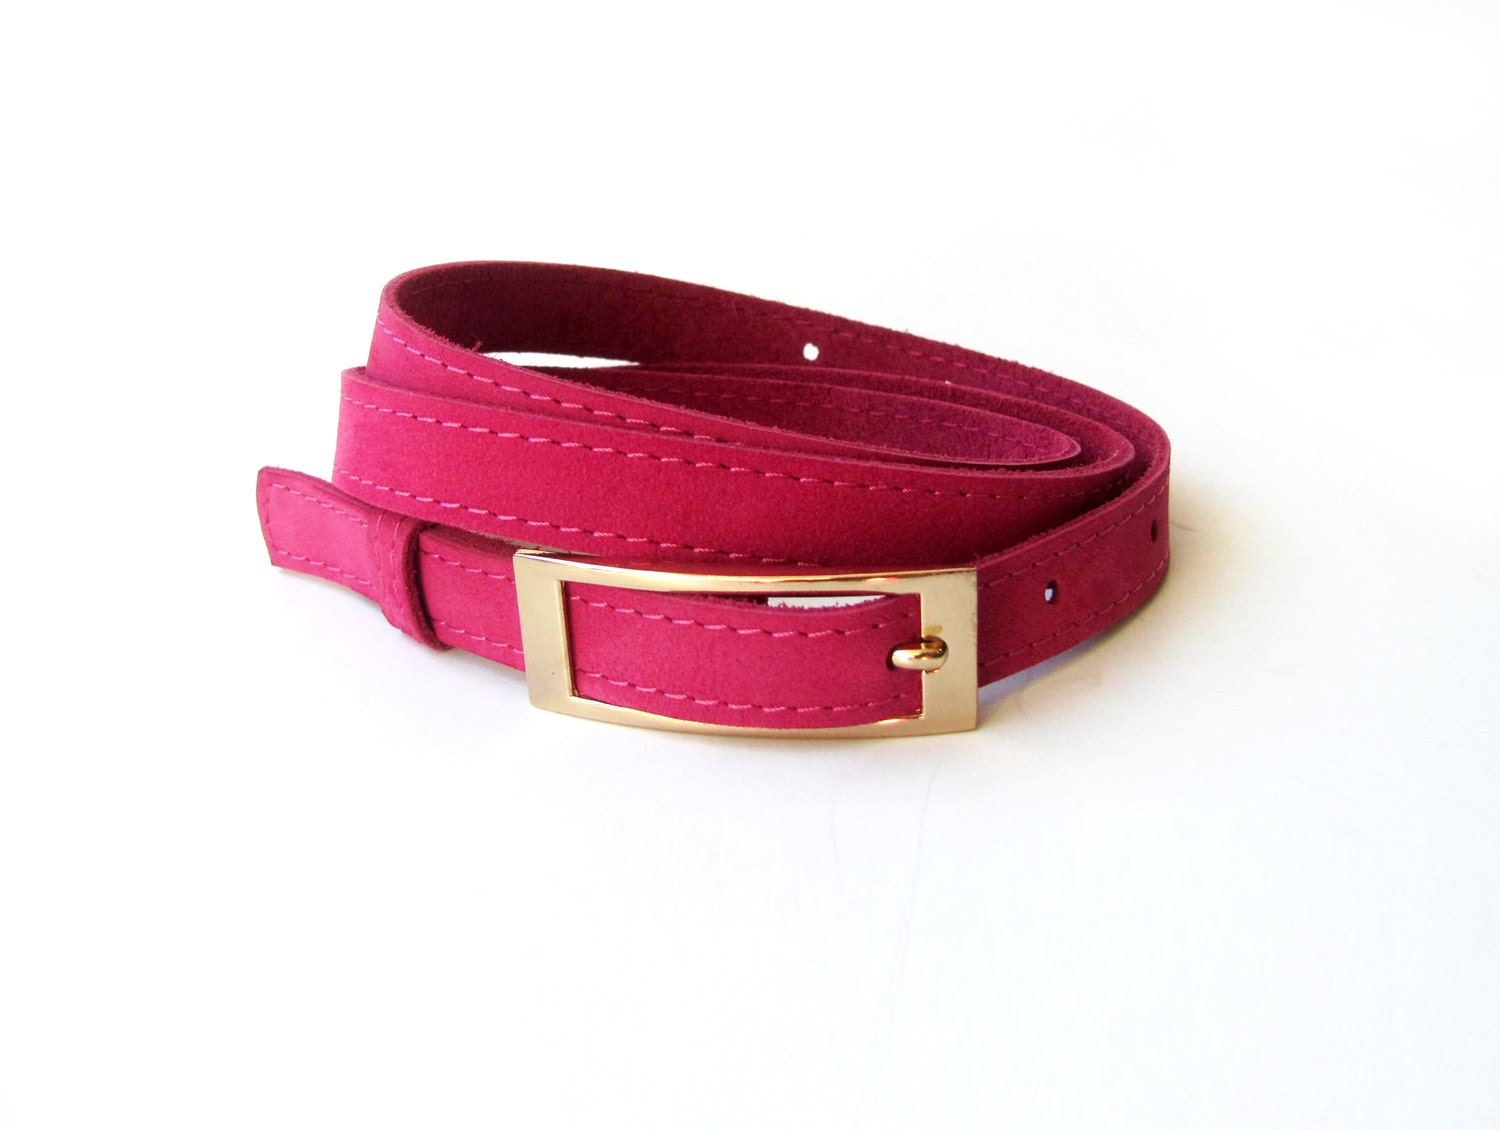 leather belt for pink leather belt narrow by